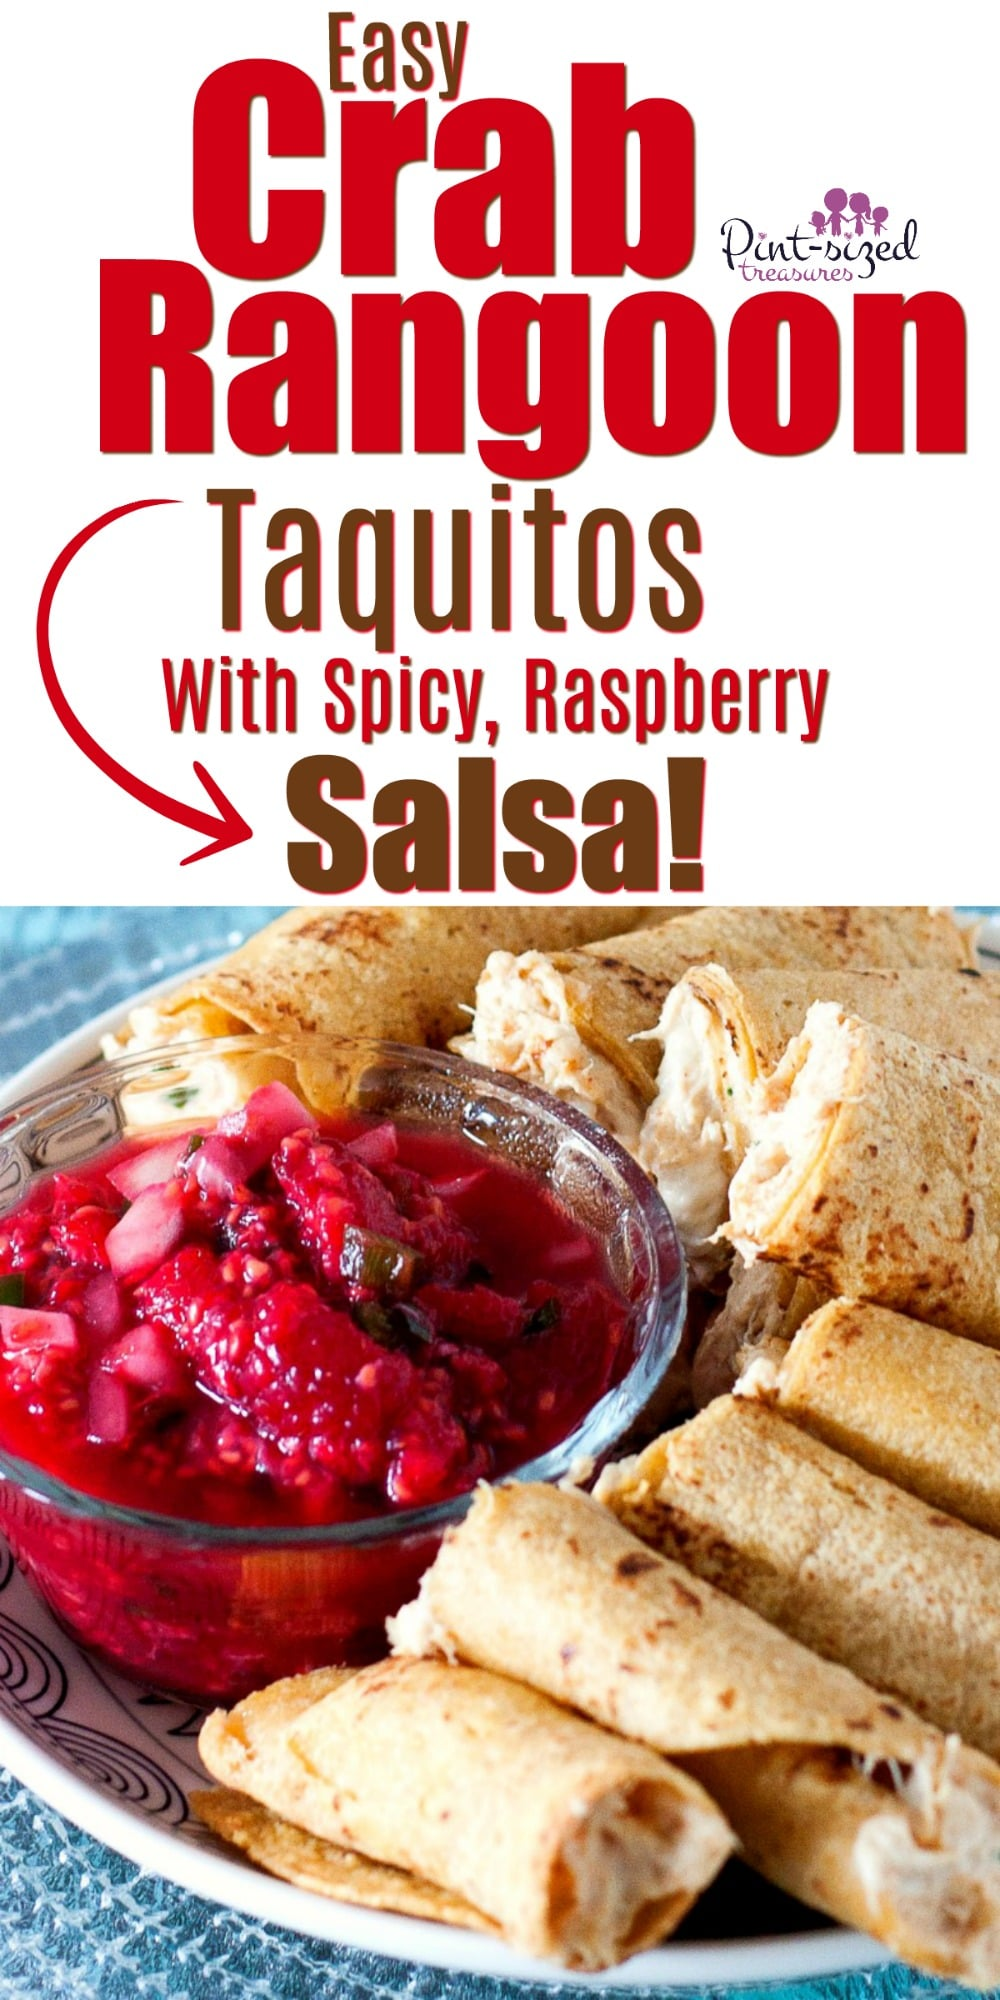 Easy crab rangoon taquitos are incredibly fun and creative! They take your favorite crab rangoon recipe and turn into a perfectly, baked taquito! Then, all those flavors get dipped into our famous, homemade, spicy, raspberry salsa! #crabrangoon #taquitos